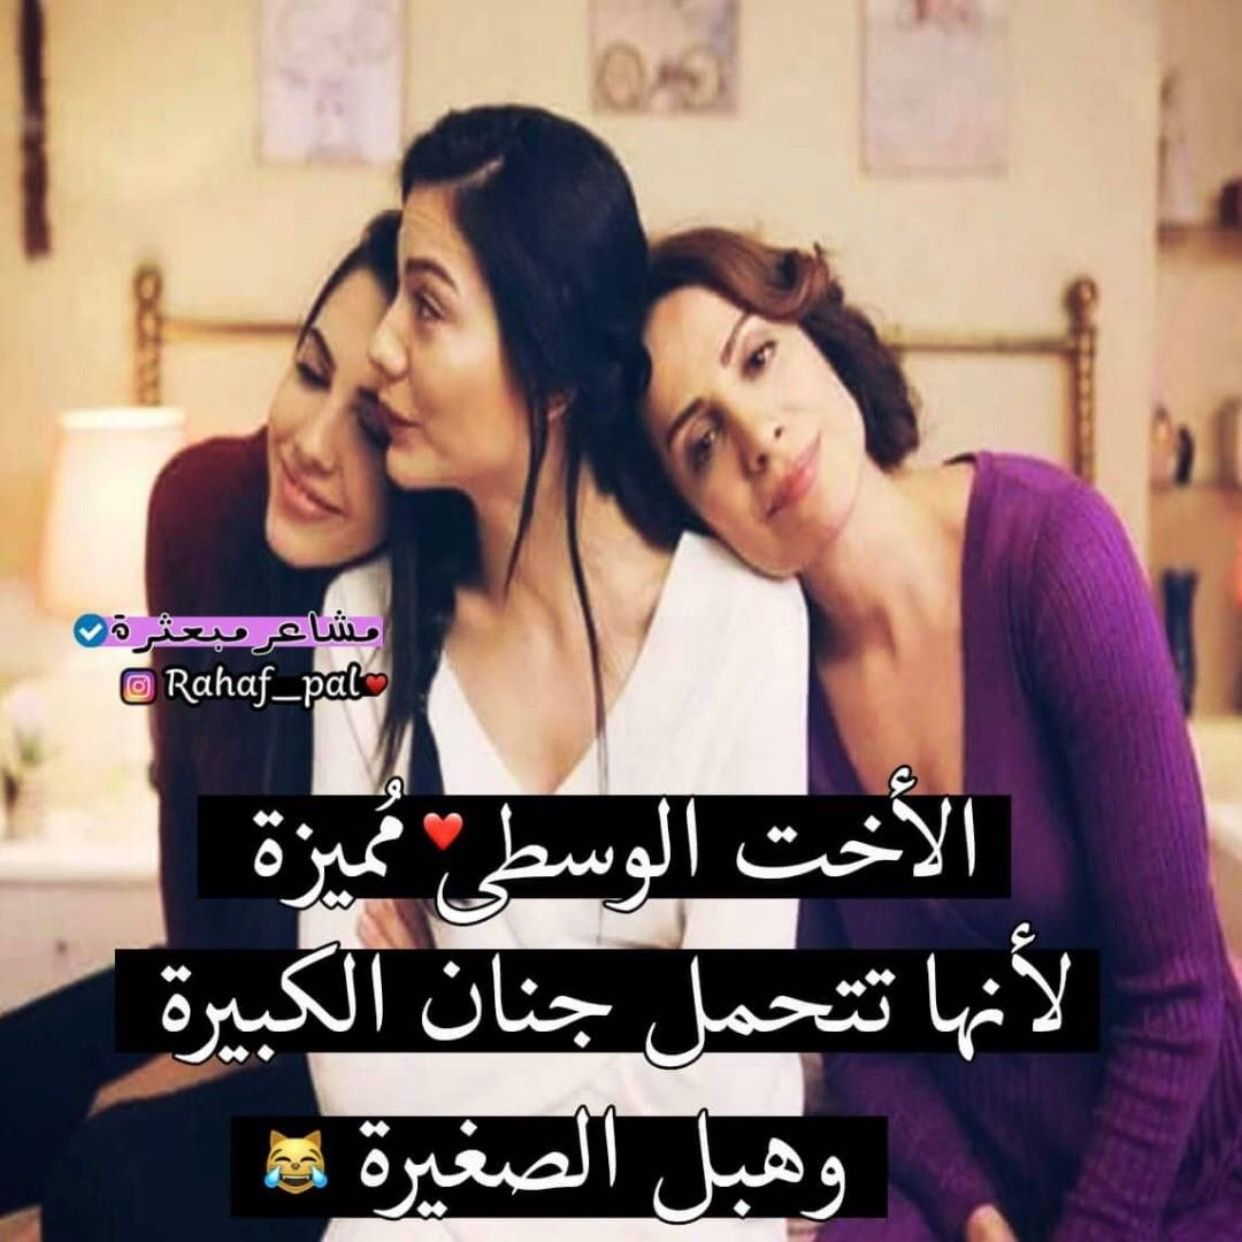 Pin By حلوشة On Arabic Quotes Funny Arabic Quotes Arabic Quotes Funny Posts